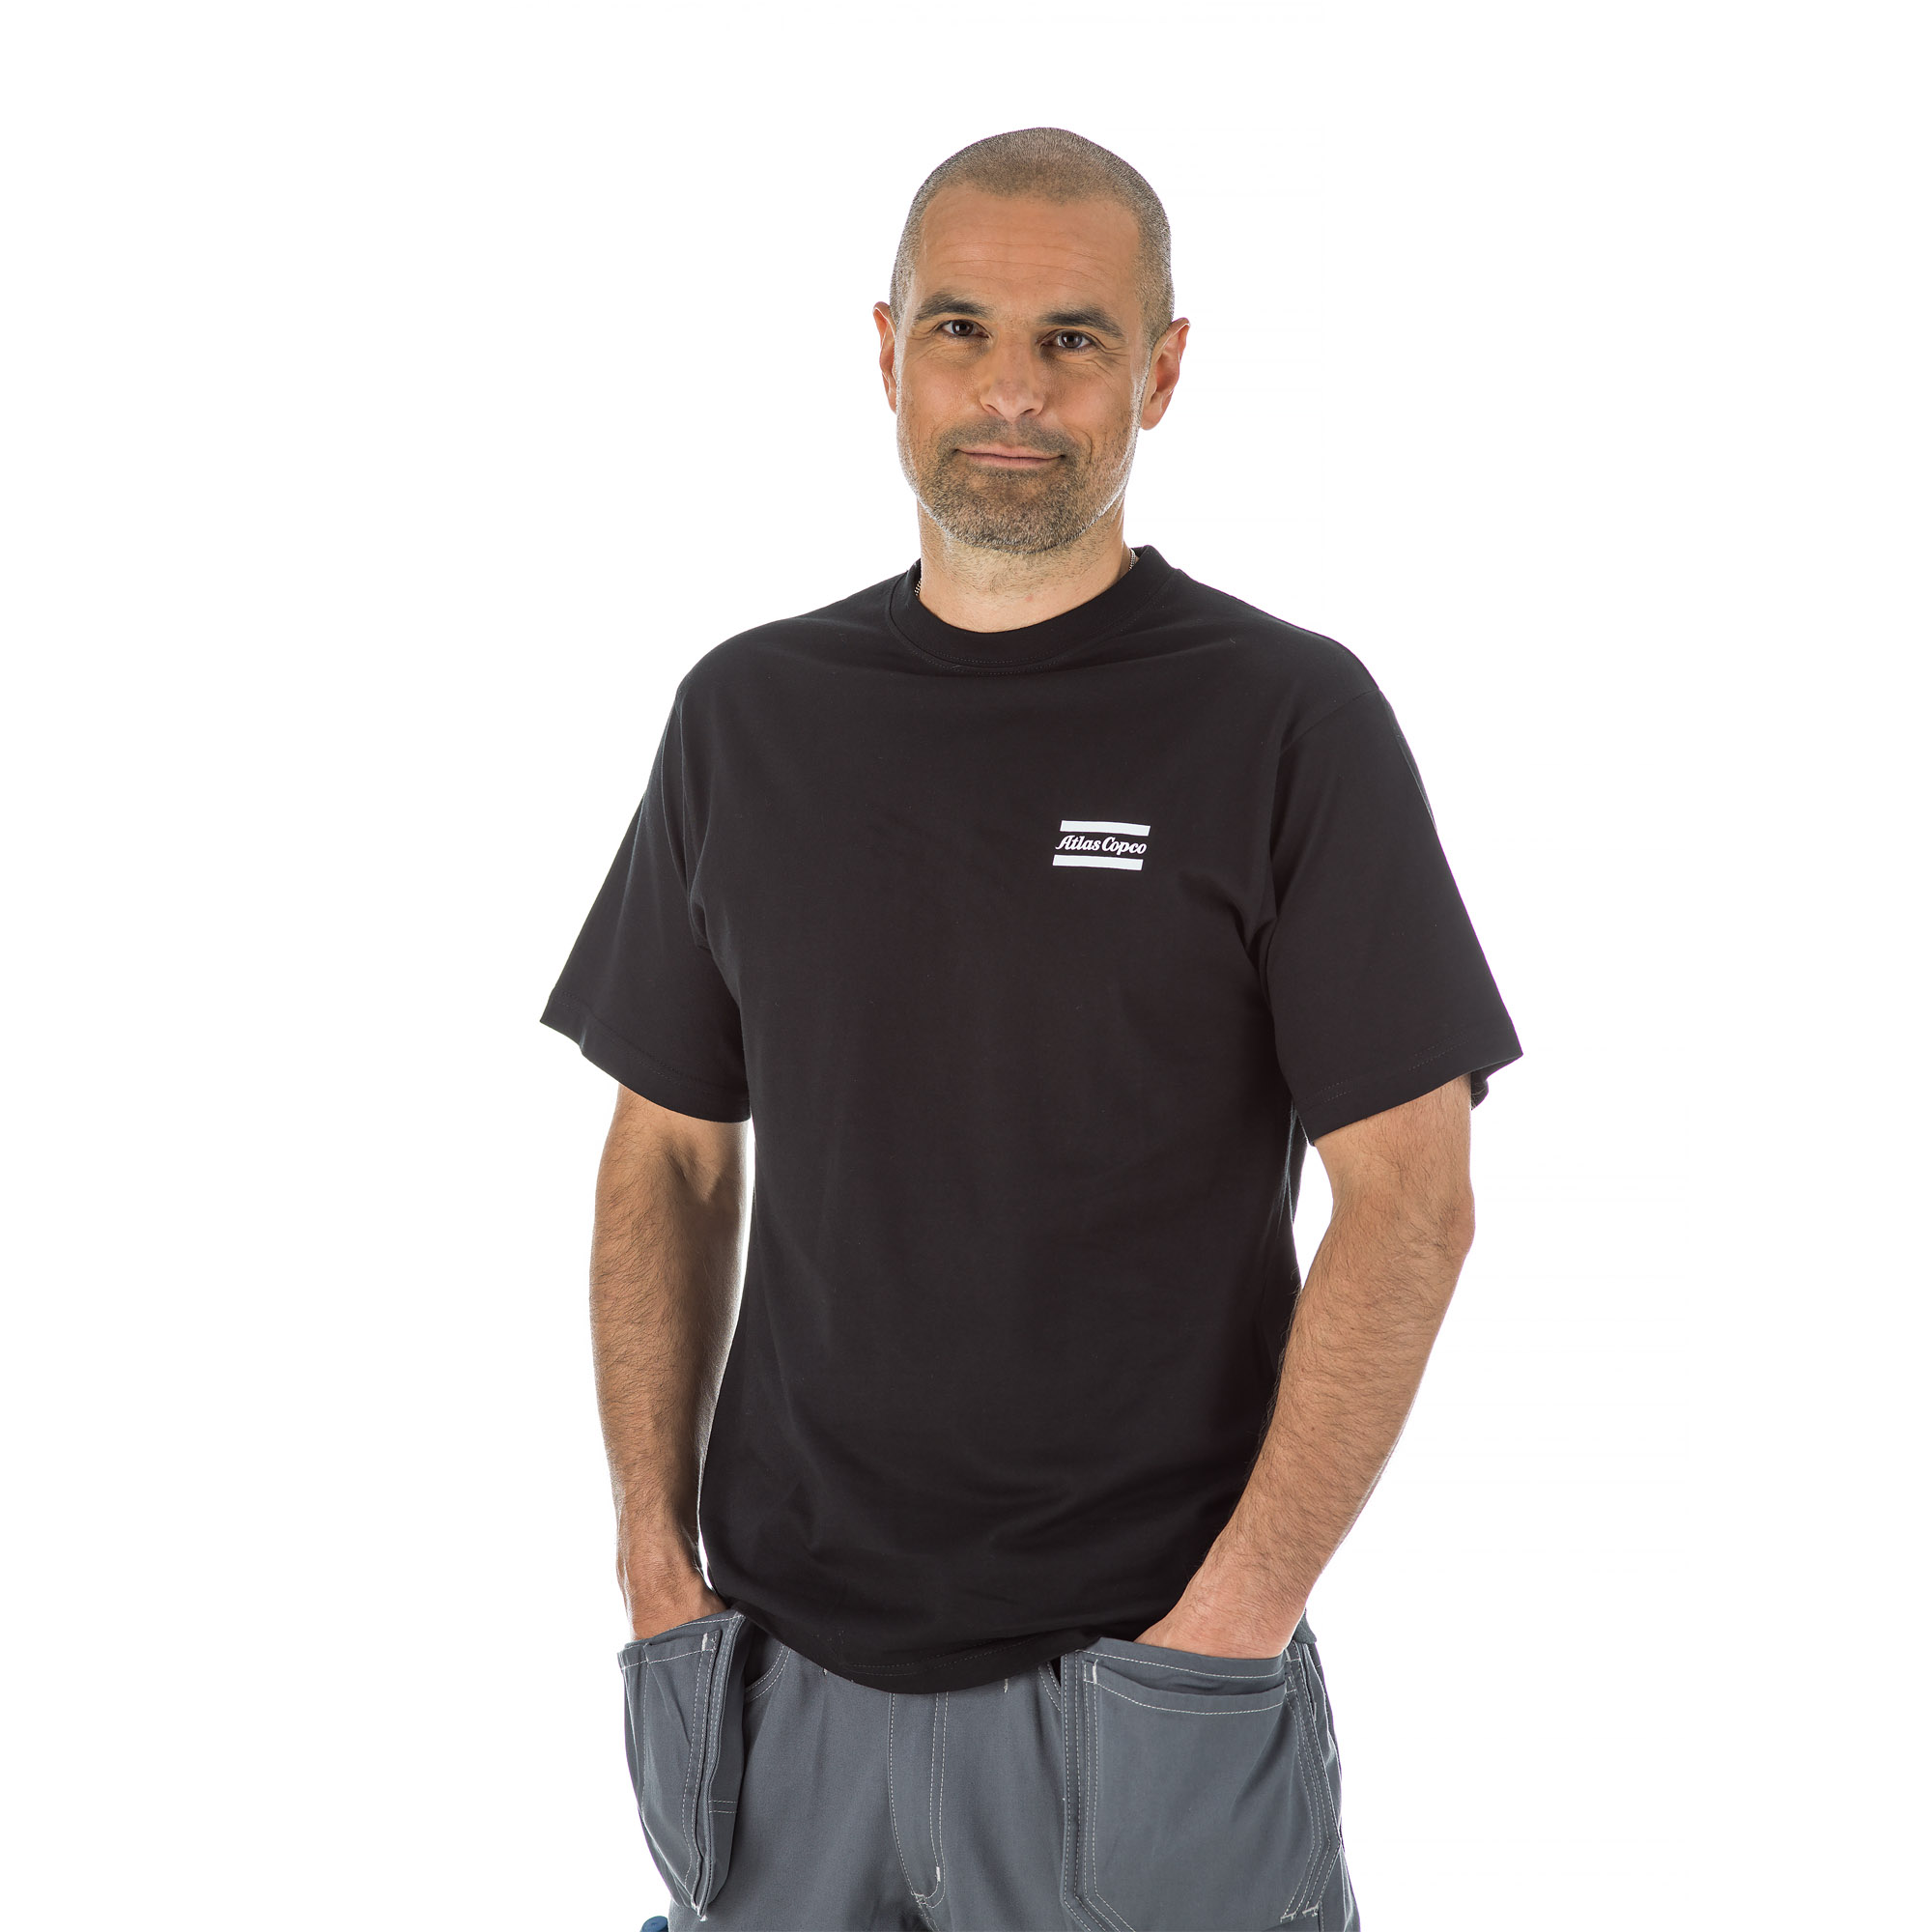 This black t-shirt is tightly knitted for increased comfort, smoothness, and strength. Equipped with shoulder-to-shoulder taping that helps to prevent raveling and rip-out and also durable double-stitched trim.